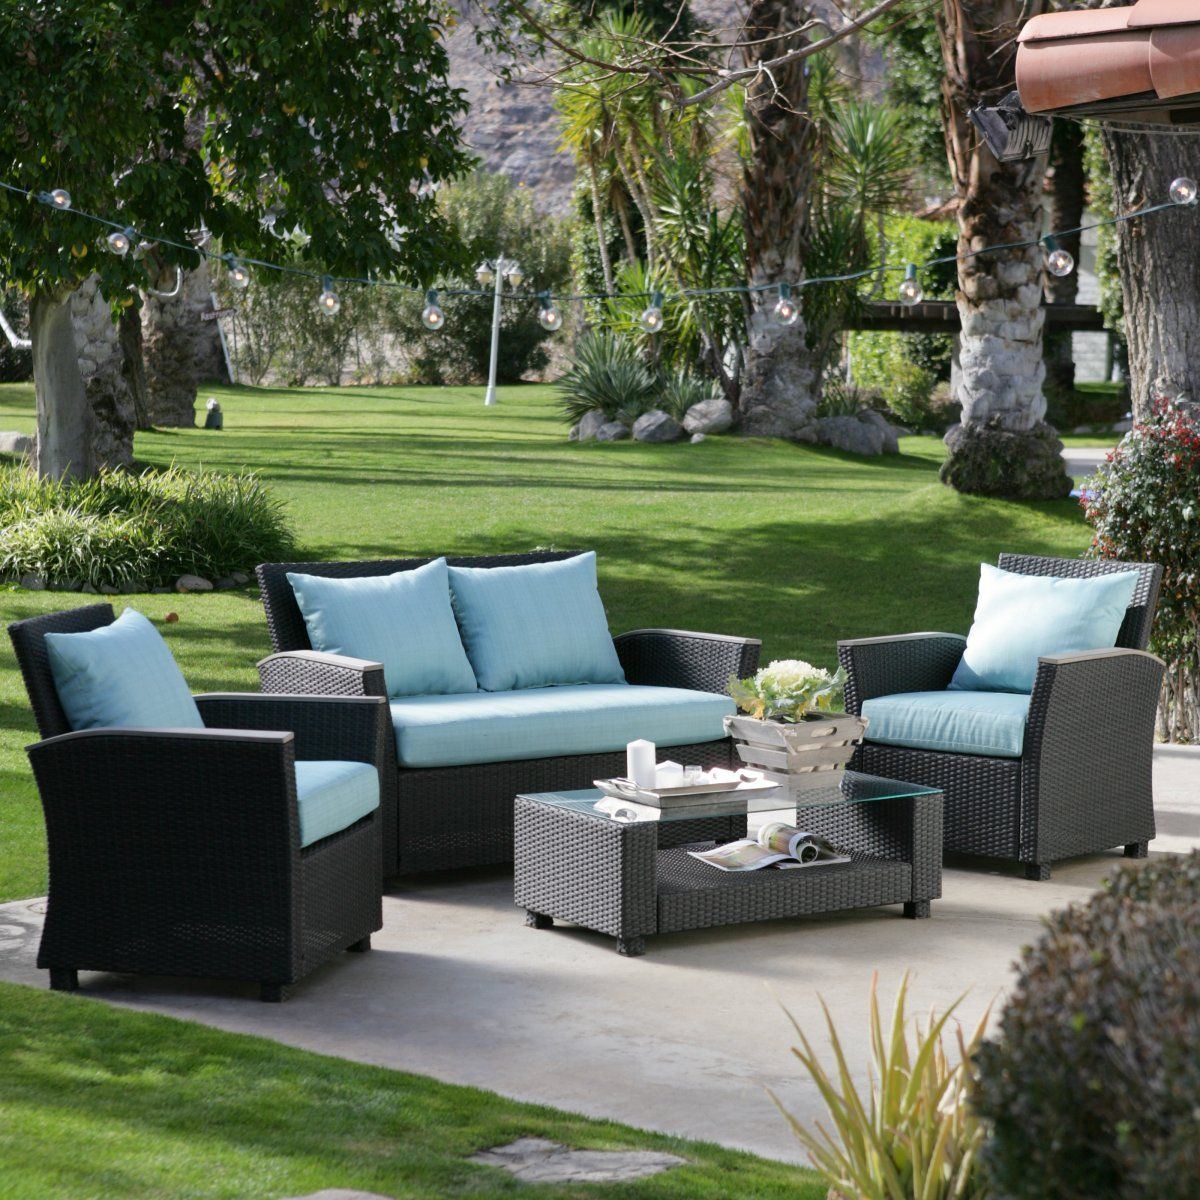 Captivating $1300 Delphi All Weather Chocolate Wicker Conversation Set   Outdoor Wicker  Furniture At Hayneedle